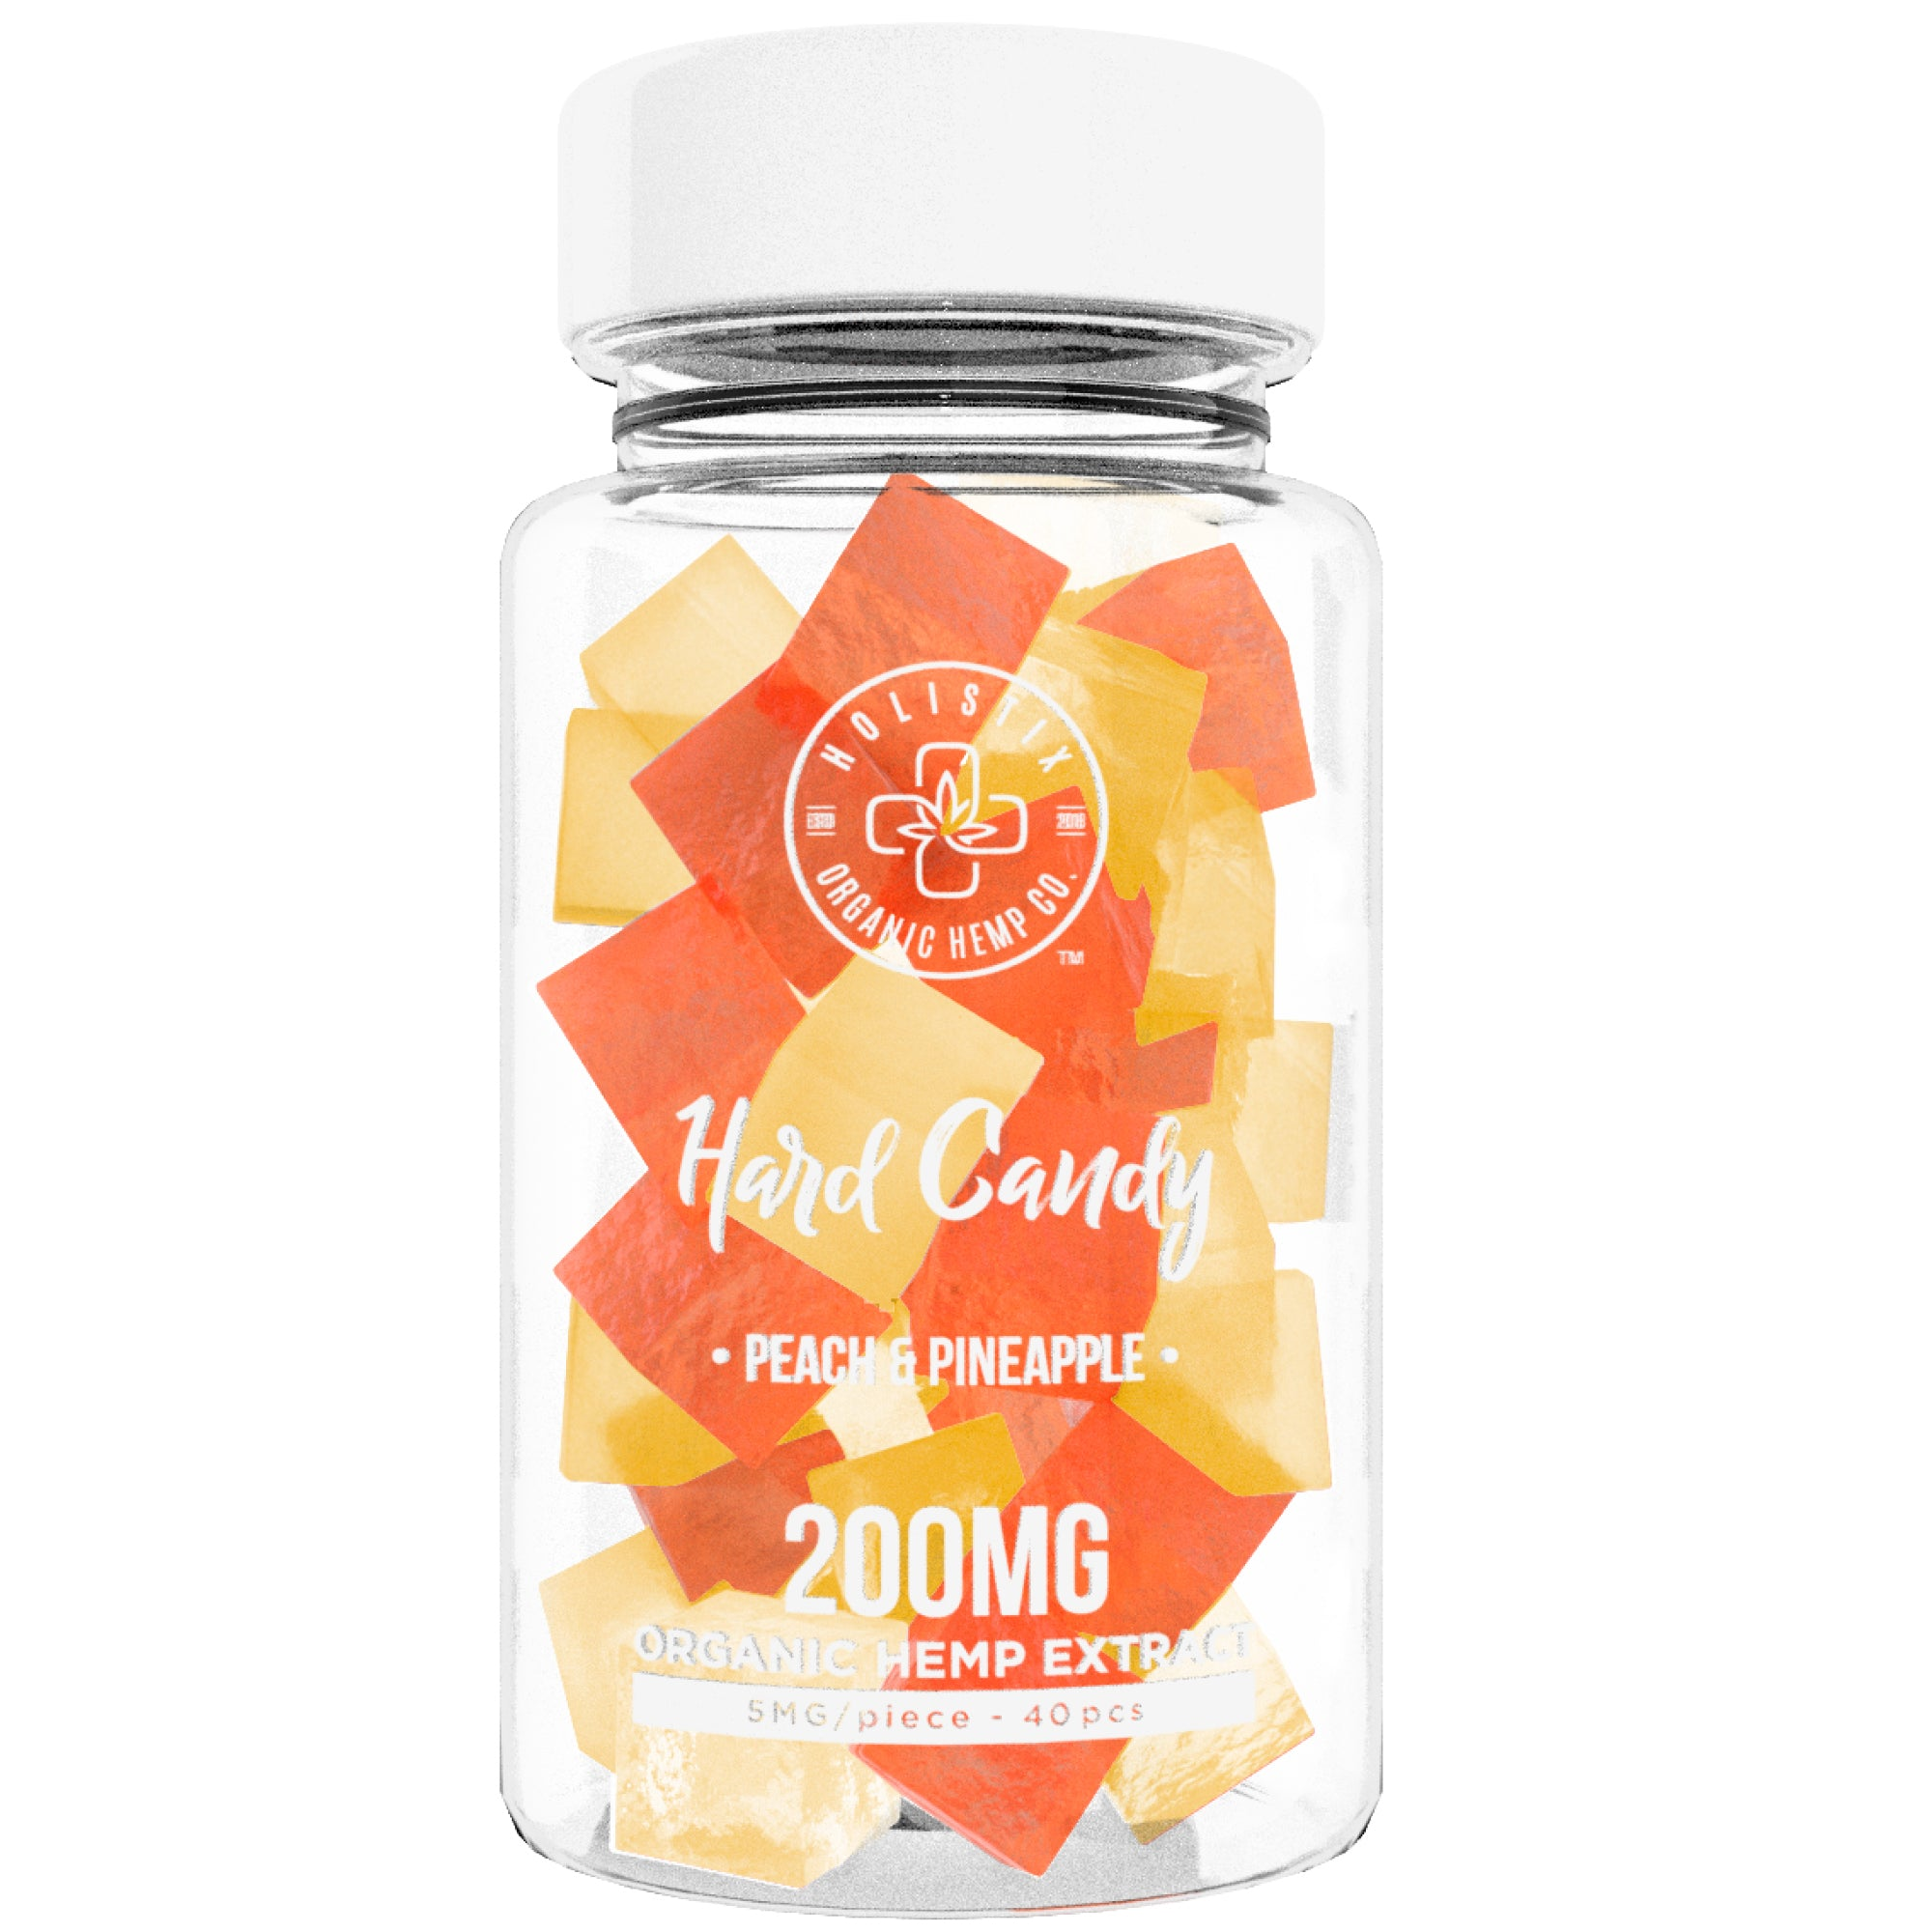 Organic Hemp Infused Hard Candy, 200 mg (5mg/piece) - Made with Organic Beet Sugar - Relieve Stress, Boost Mood, Gluten Free, Non-GMO, USDA Certified Vegan 40 Candies, Peach and Pineapple